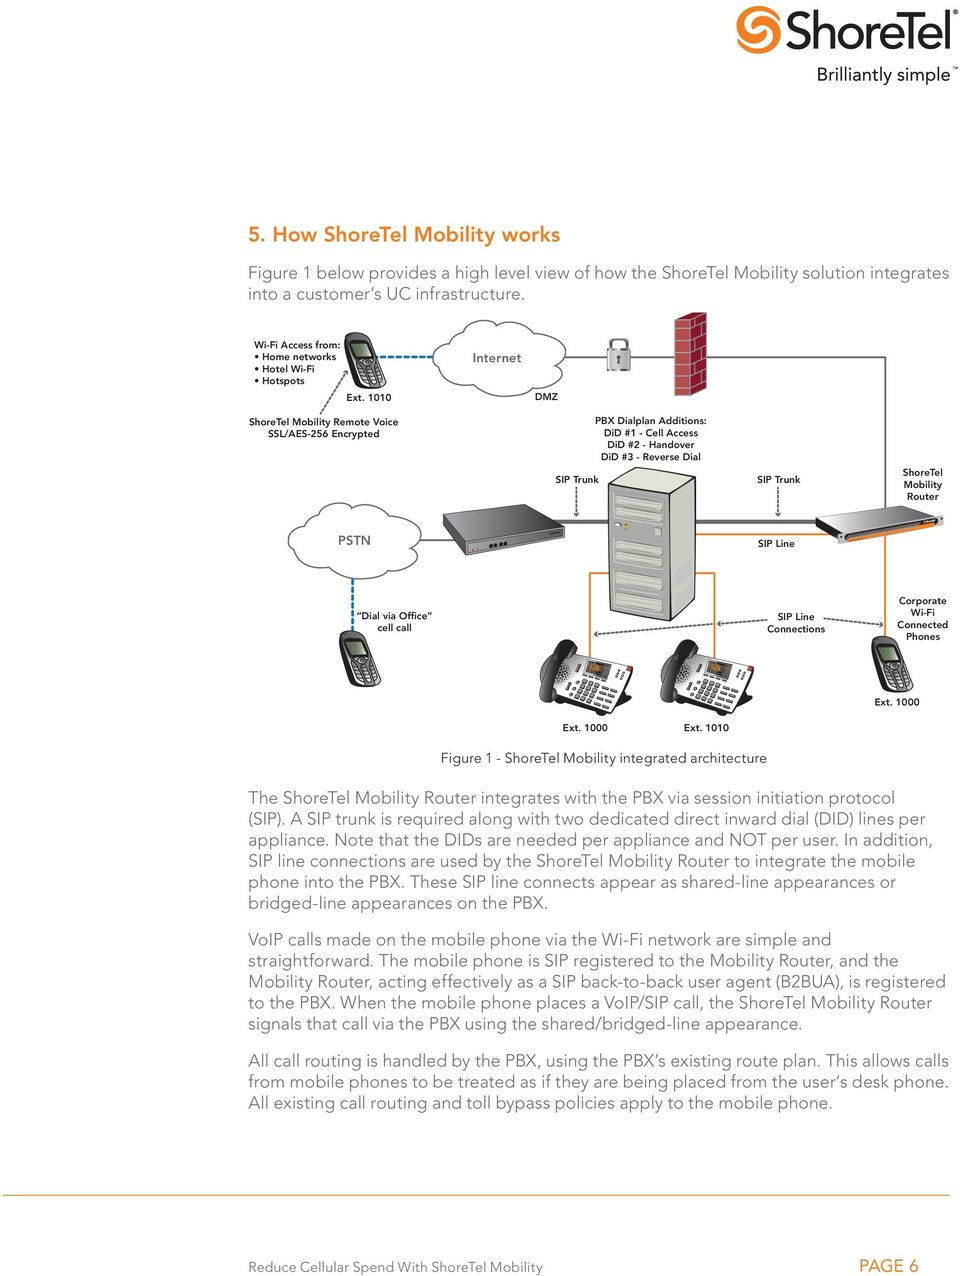 1010 Internet DMZ ShoreTel Mobility Remote Voice SSL/AES-256 Encrypted SIP Trunk PBX Dialplan Additions: DiD #1 - Cell Access DiD #2 - Handover DiD #3 - Reverse Dial SIP Trunk ShoreTel Mobility